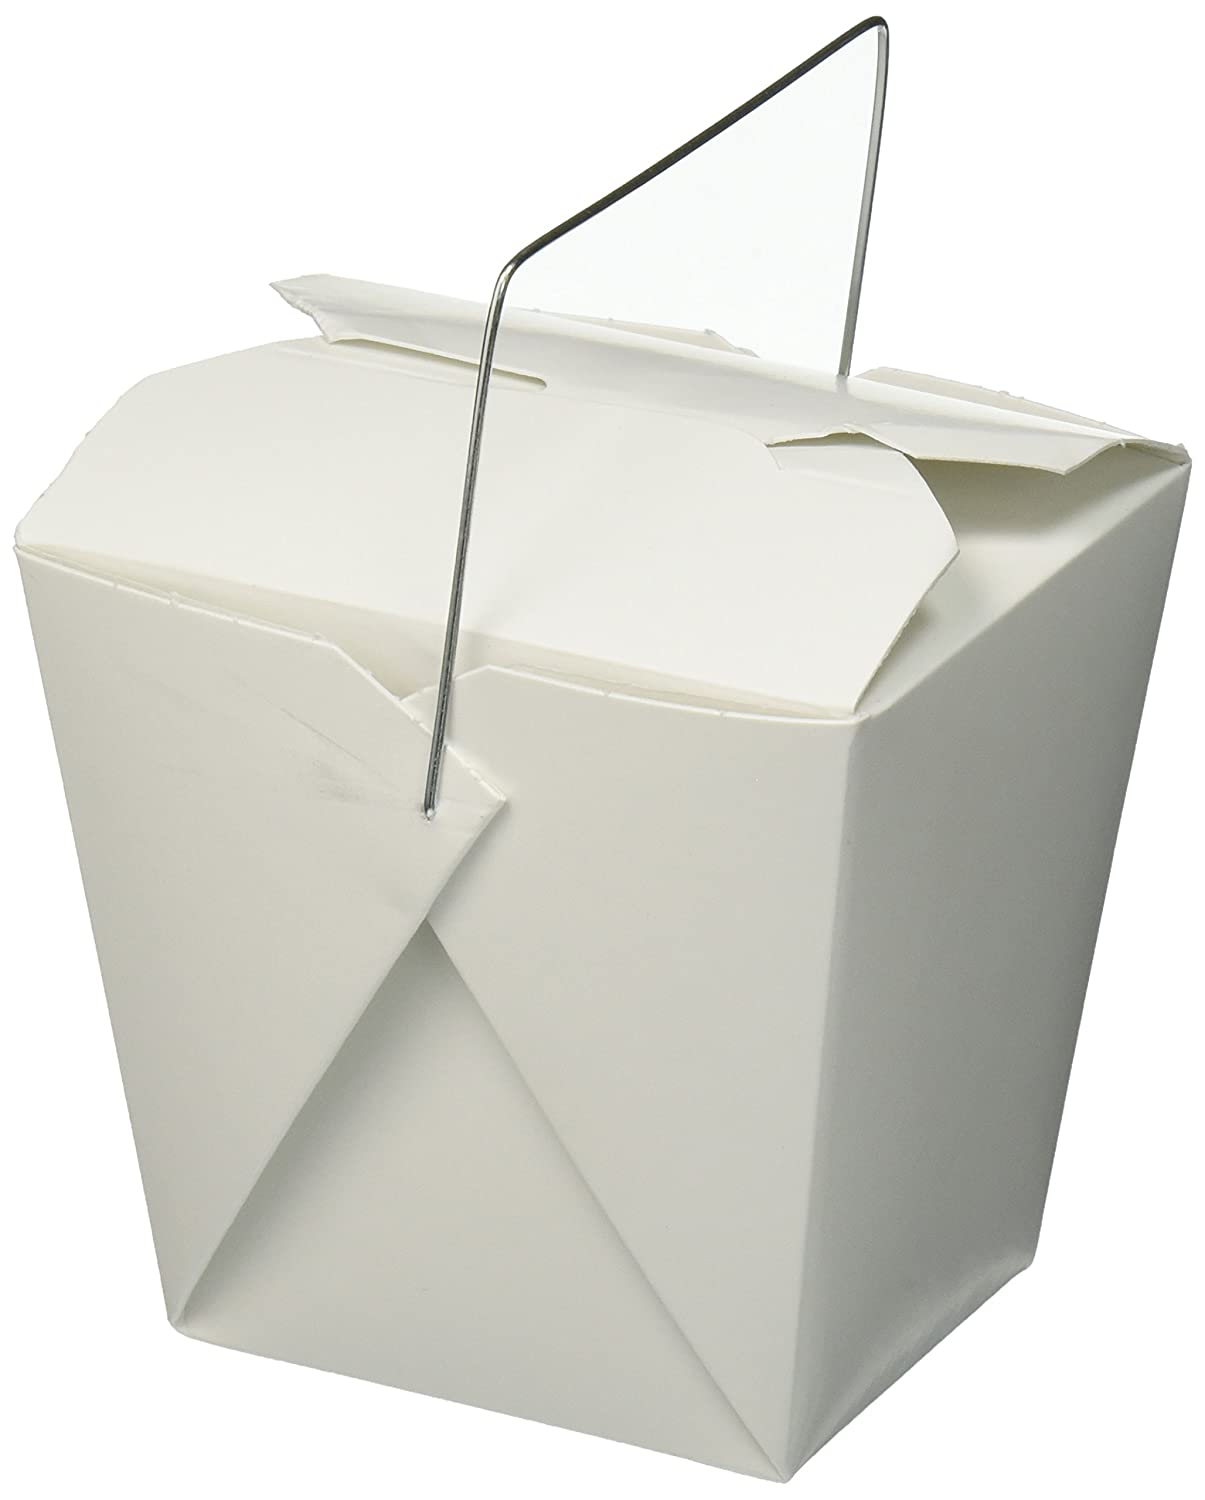 Amazon.com: Chinese Take Out Food Boxes, White with Metal Wire ...